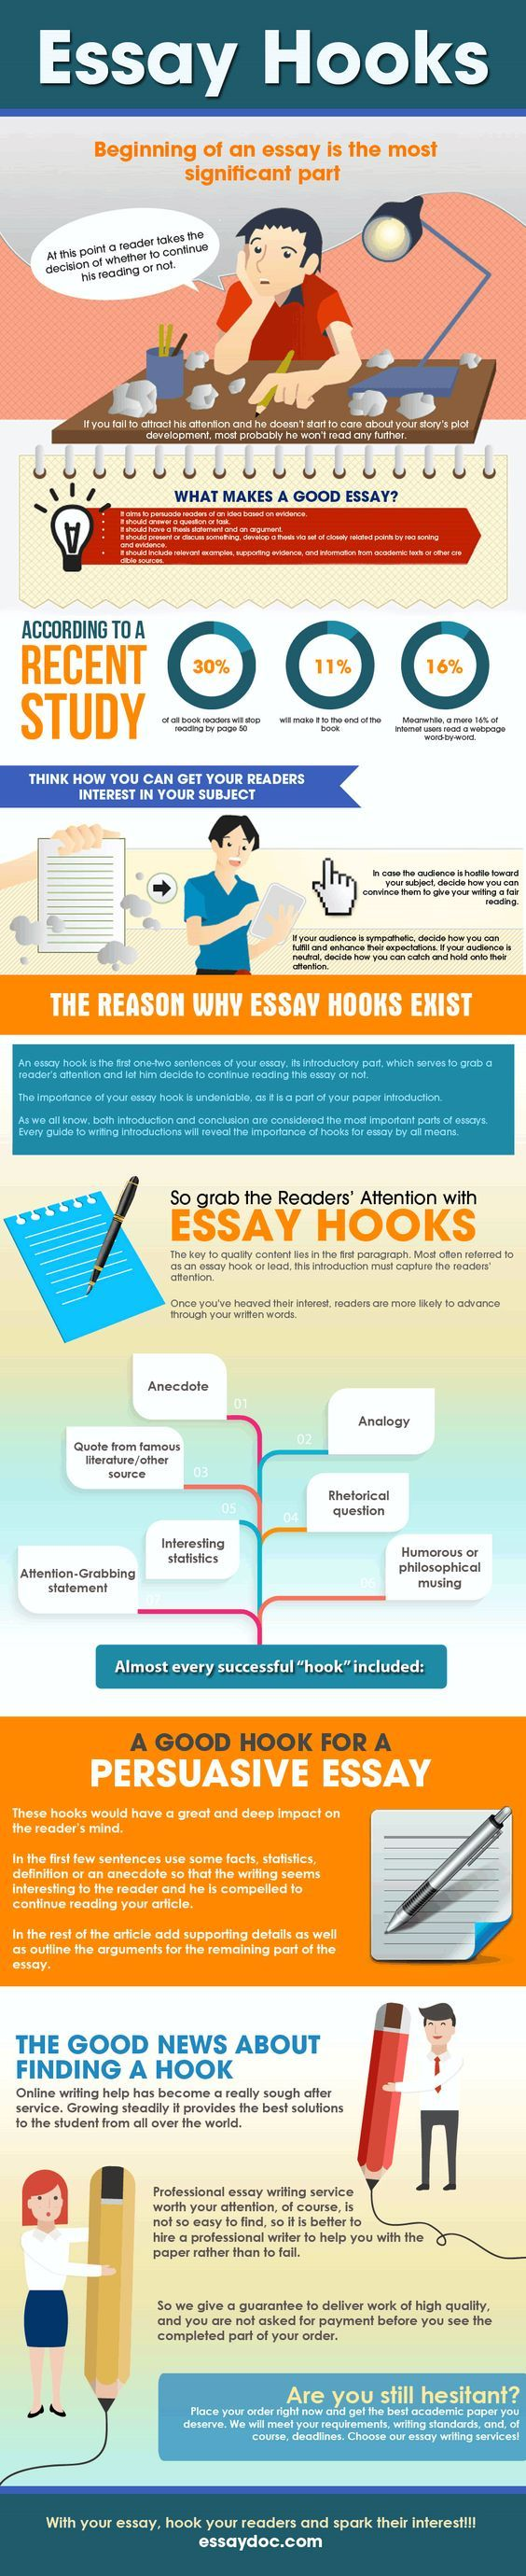 best ideas about how to write essay english nice how to write a cause effect essay definition writing steps